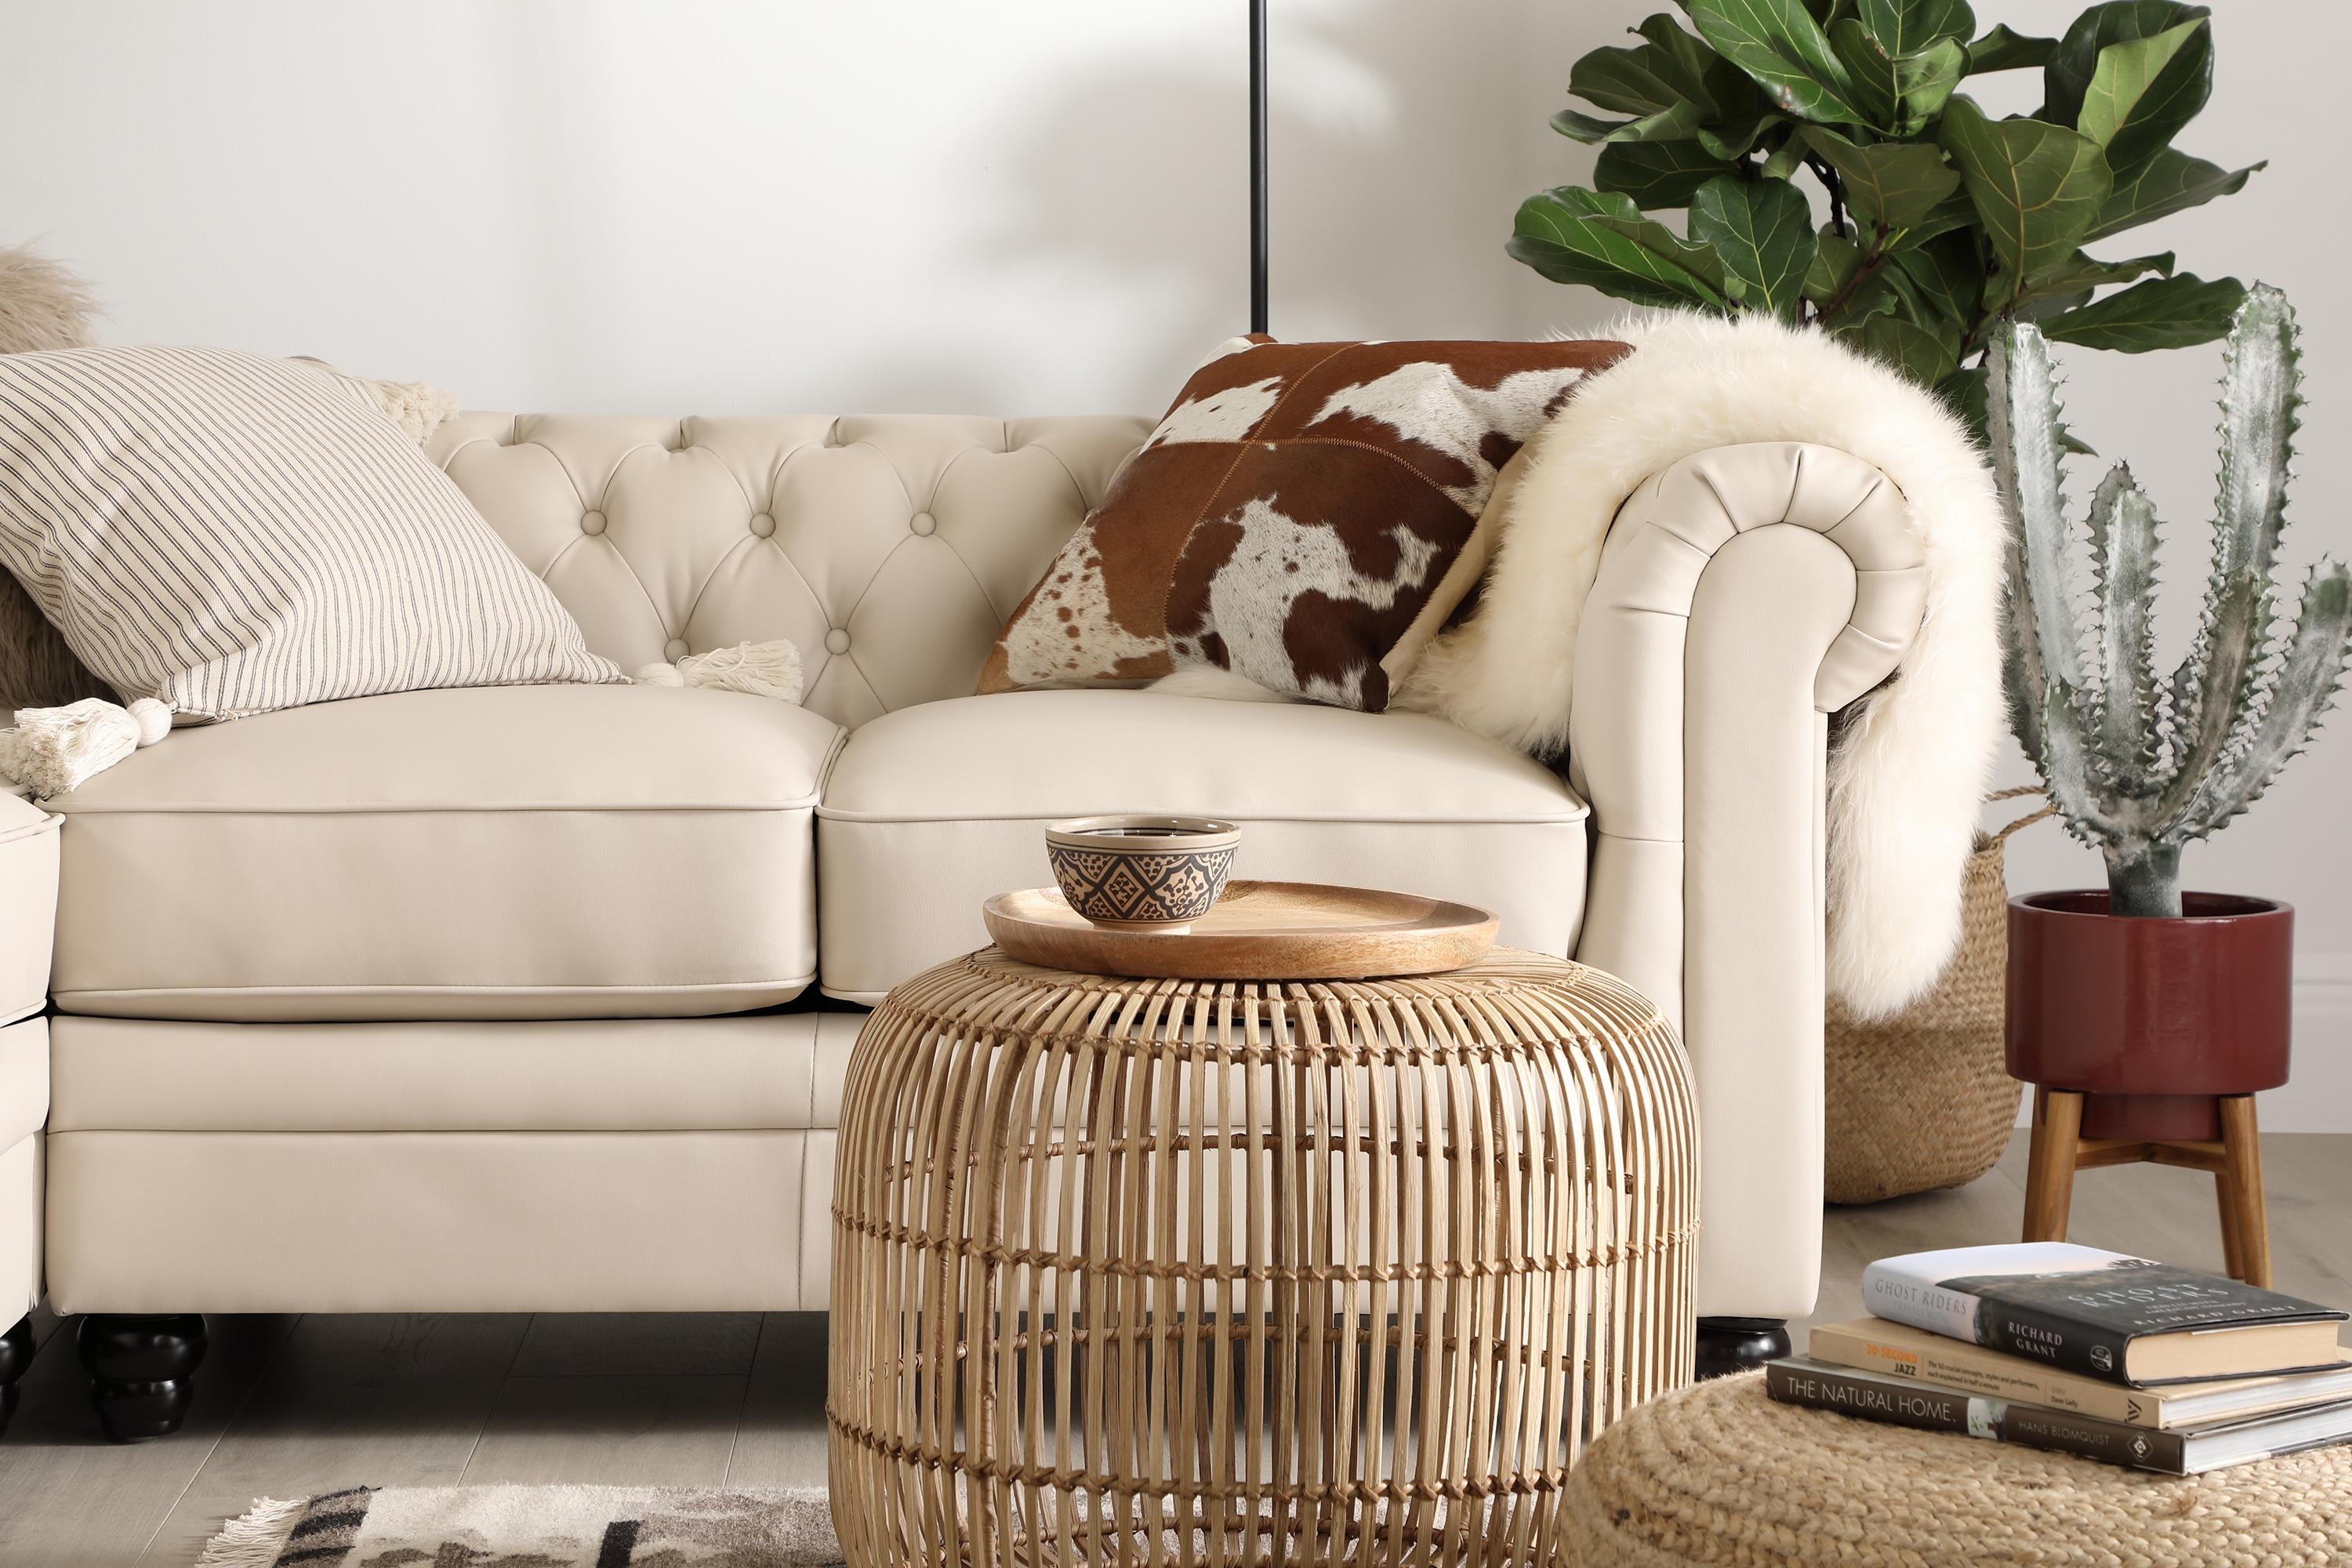 White leather sofa with natural decor and indoor plants